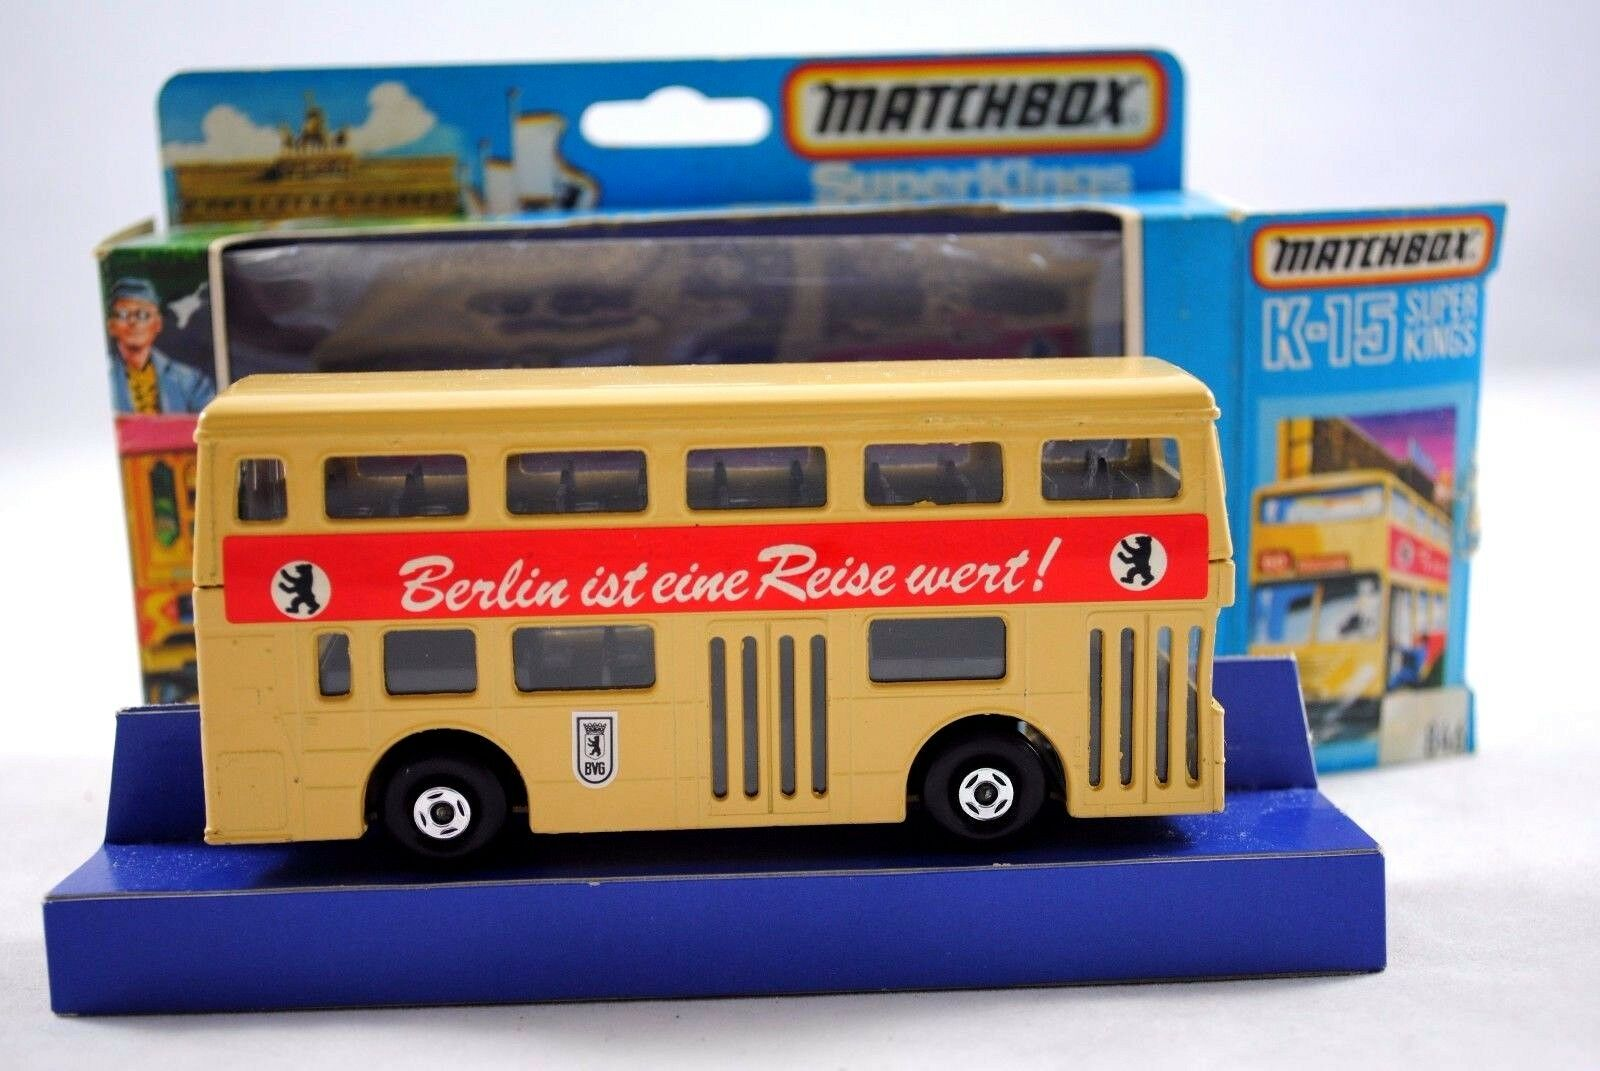 Matchbox SUPERKINGS K-15 LONDON BUS BERLIN ist eine Reise Reise Reise wert German Issue MIB 74d94a